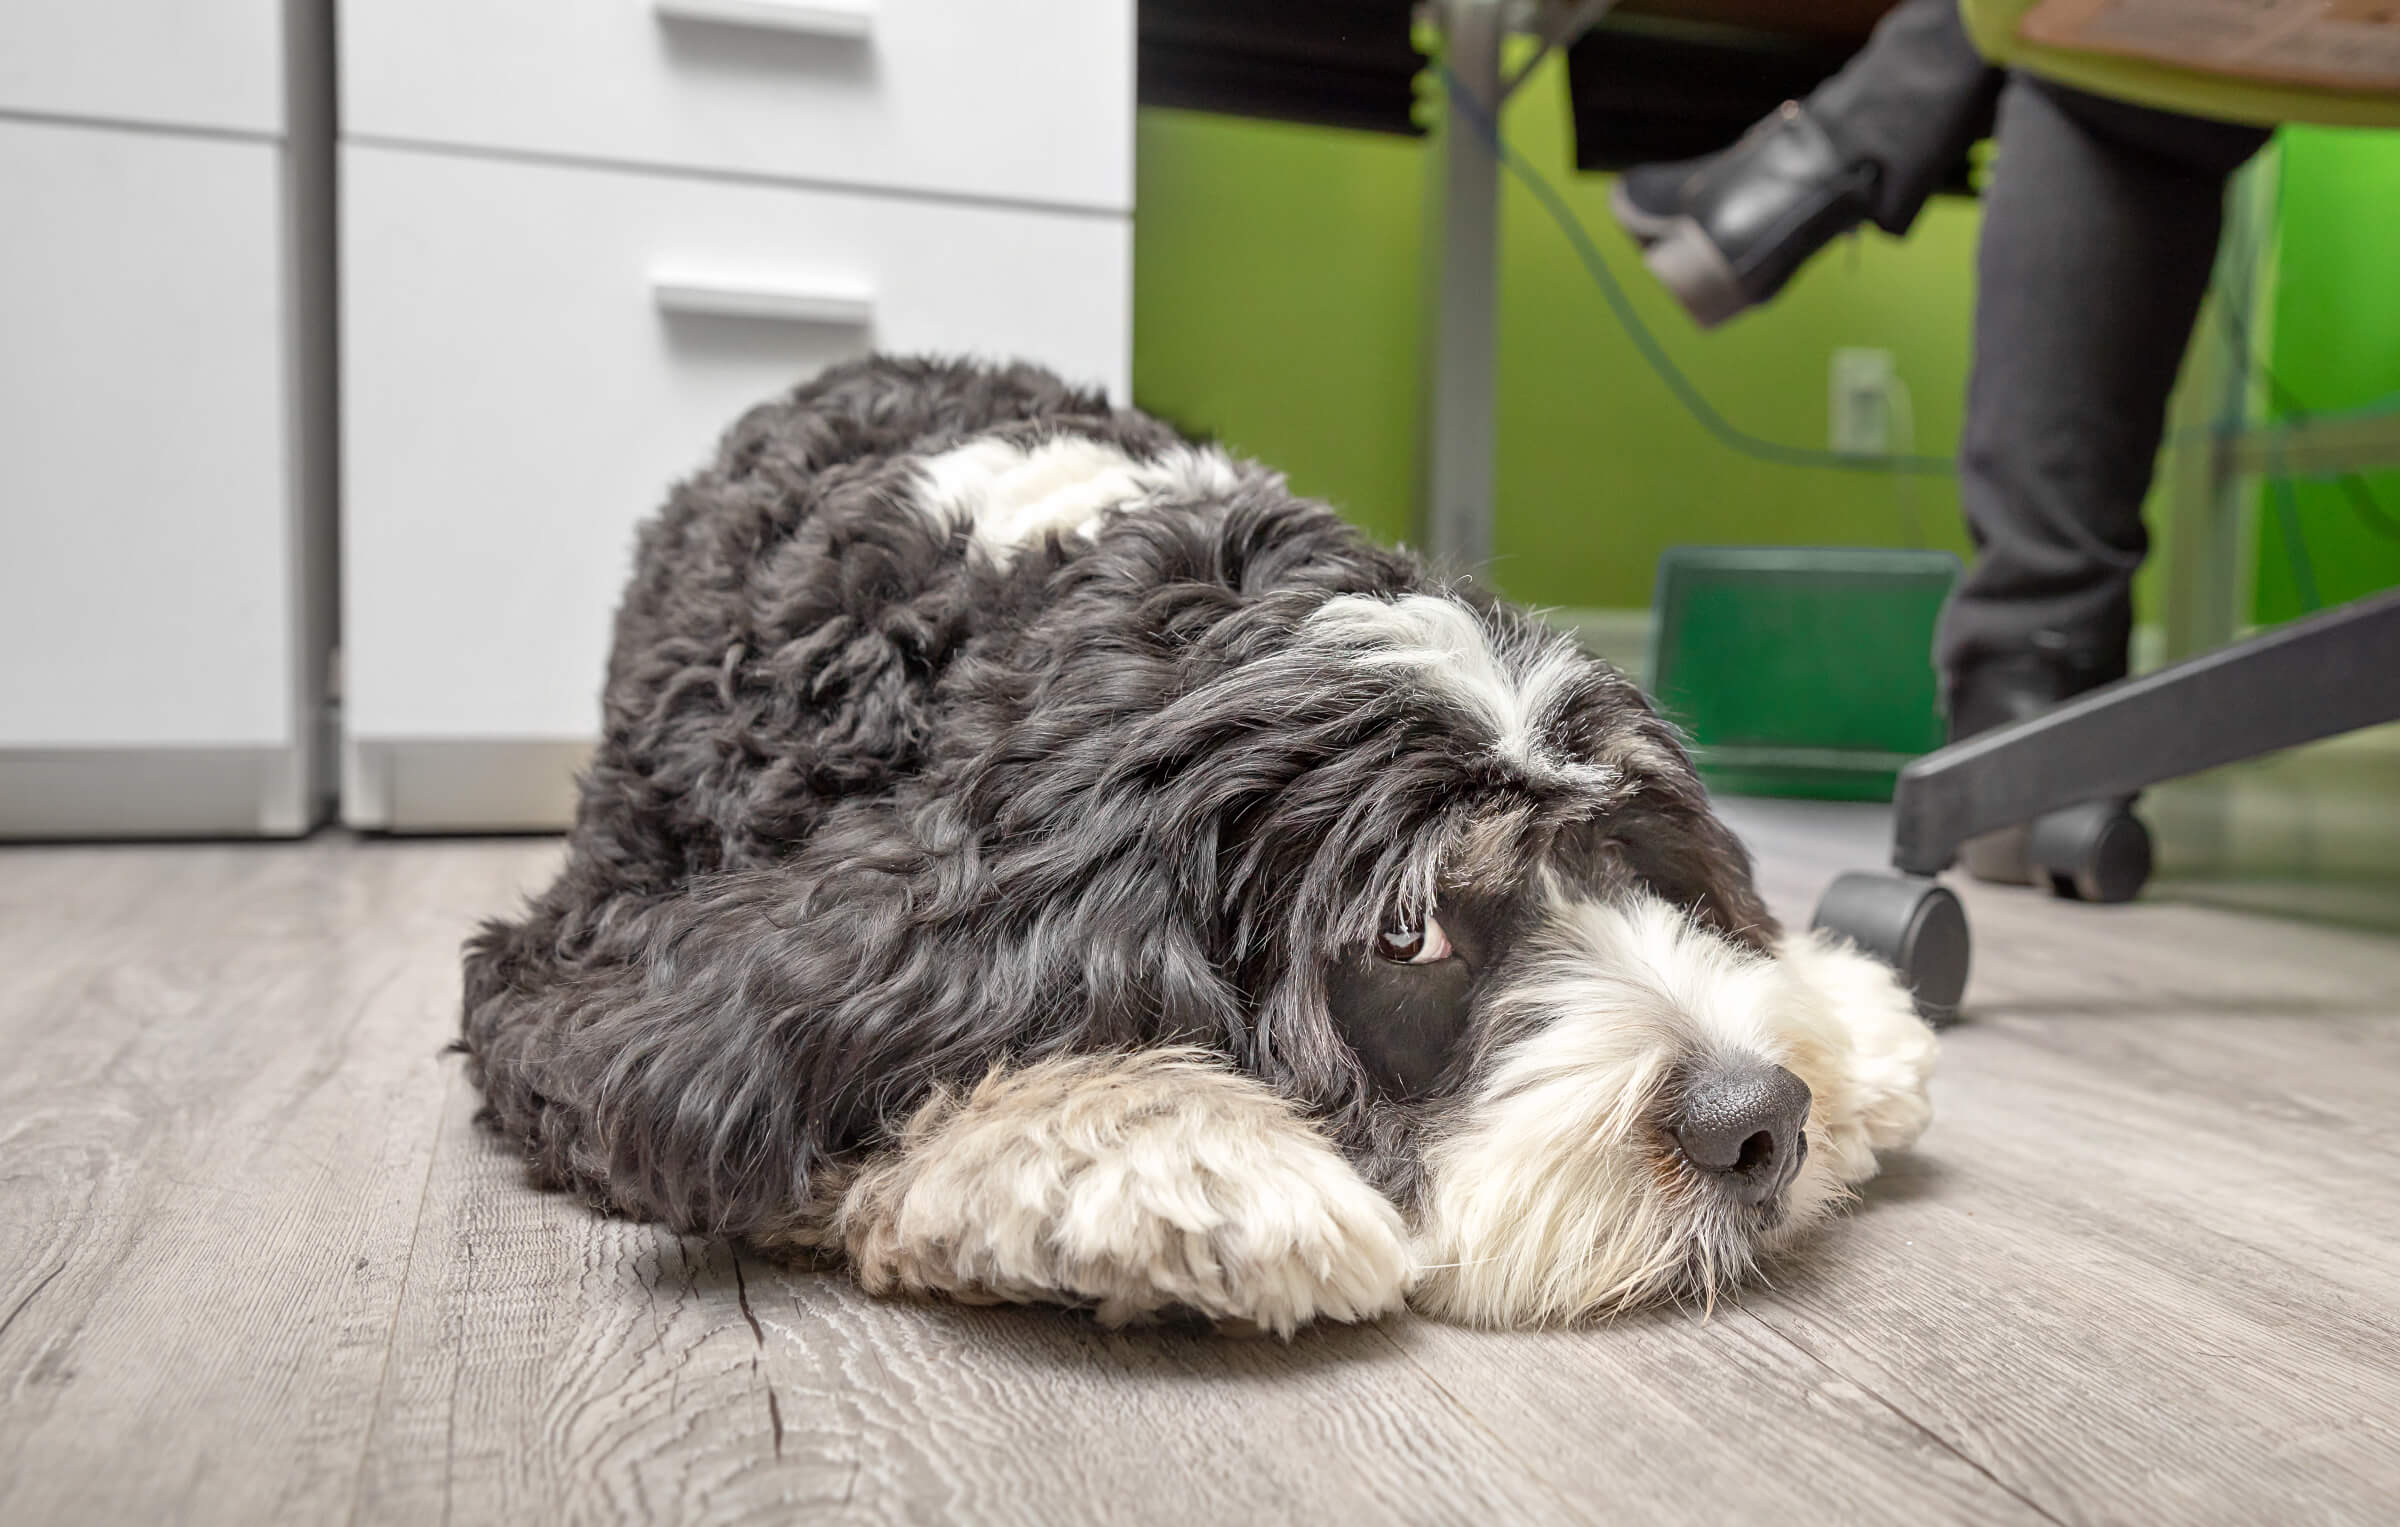 bernedoodle laying under desk while employee works